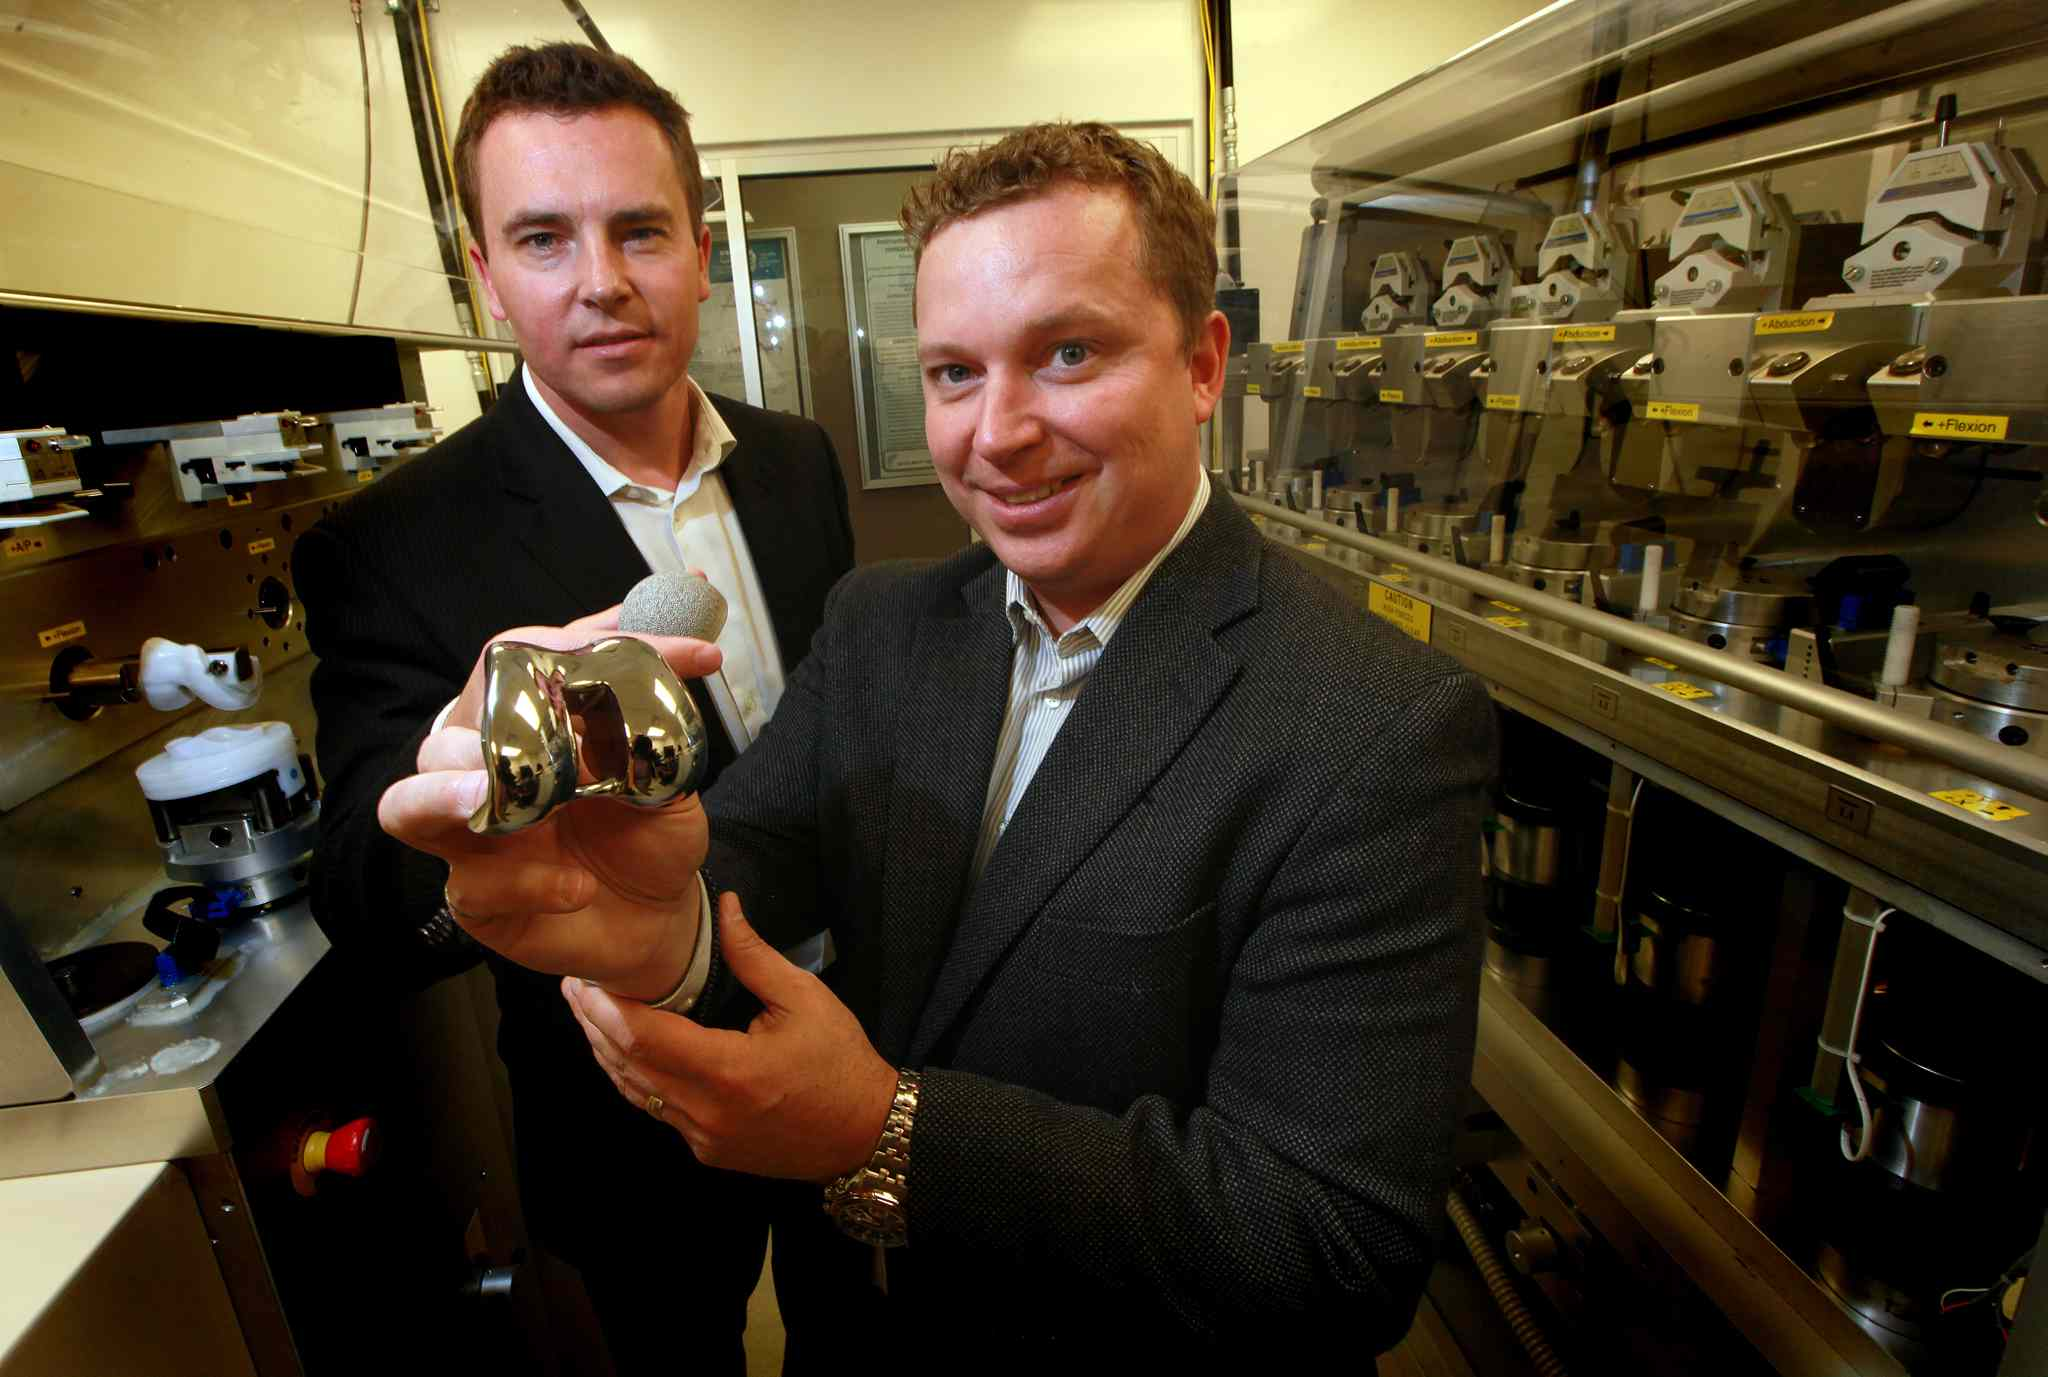 Dale Kellington (left) and Martin Petrak of the Orthopaedic Innovation Centre hold parts of a knee joint they will soon be printing in 3D. The firm is contributing to the boost in economic growth this year.